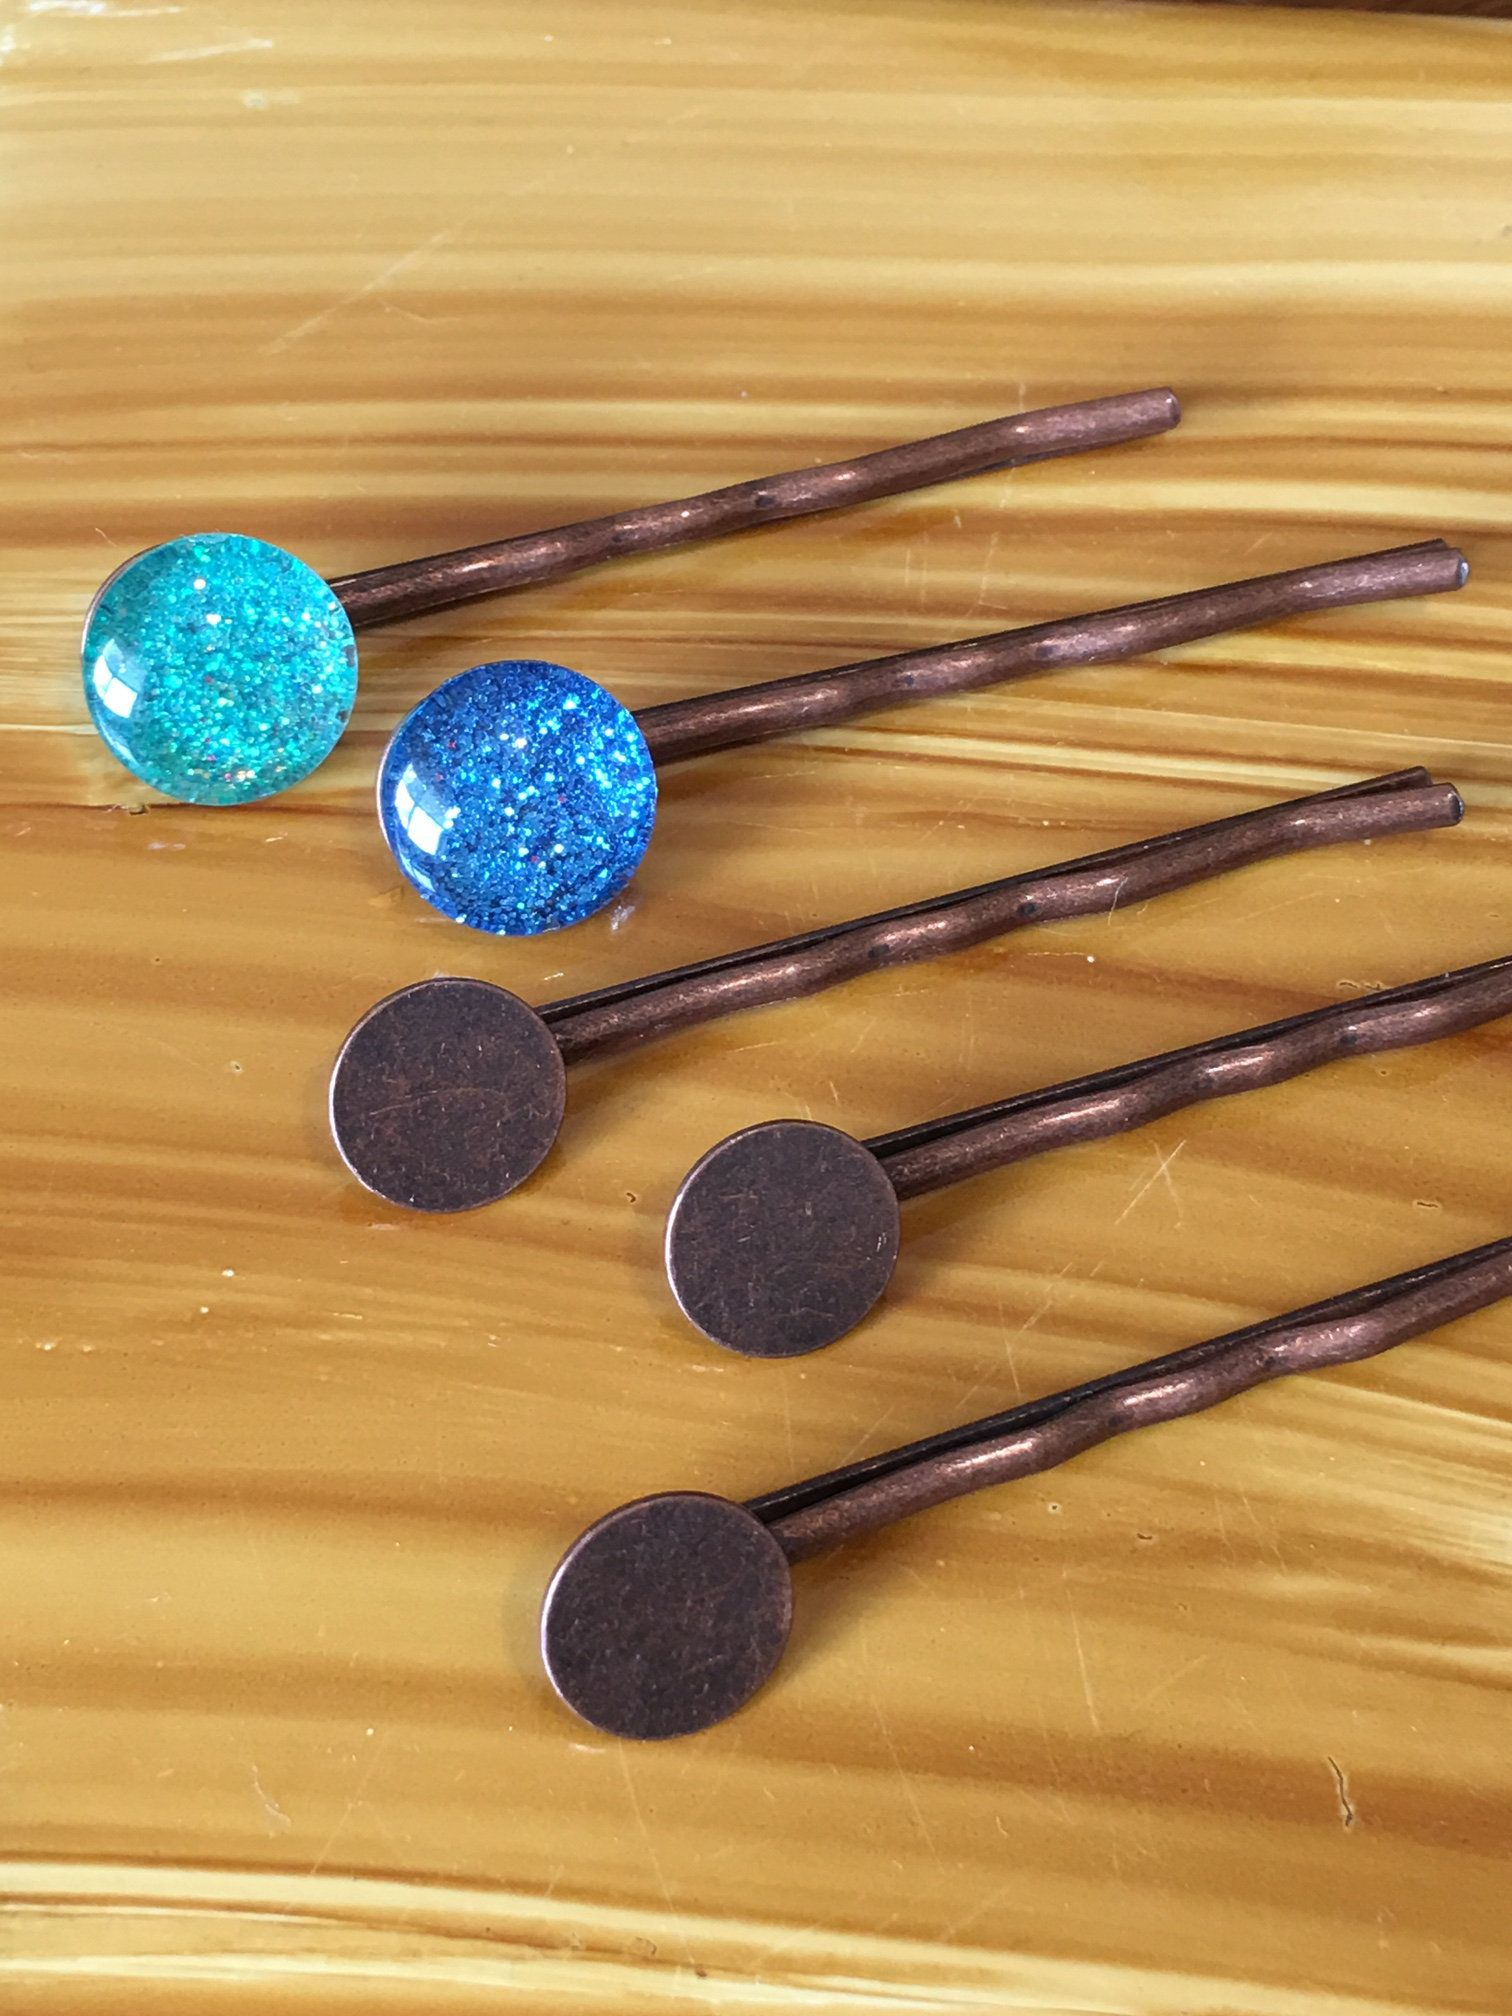 50 Silver Bobby Pins Hair Clips Findings// Blanks w// Glue Pad